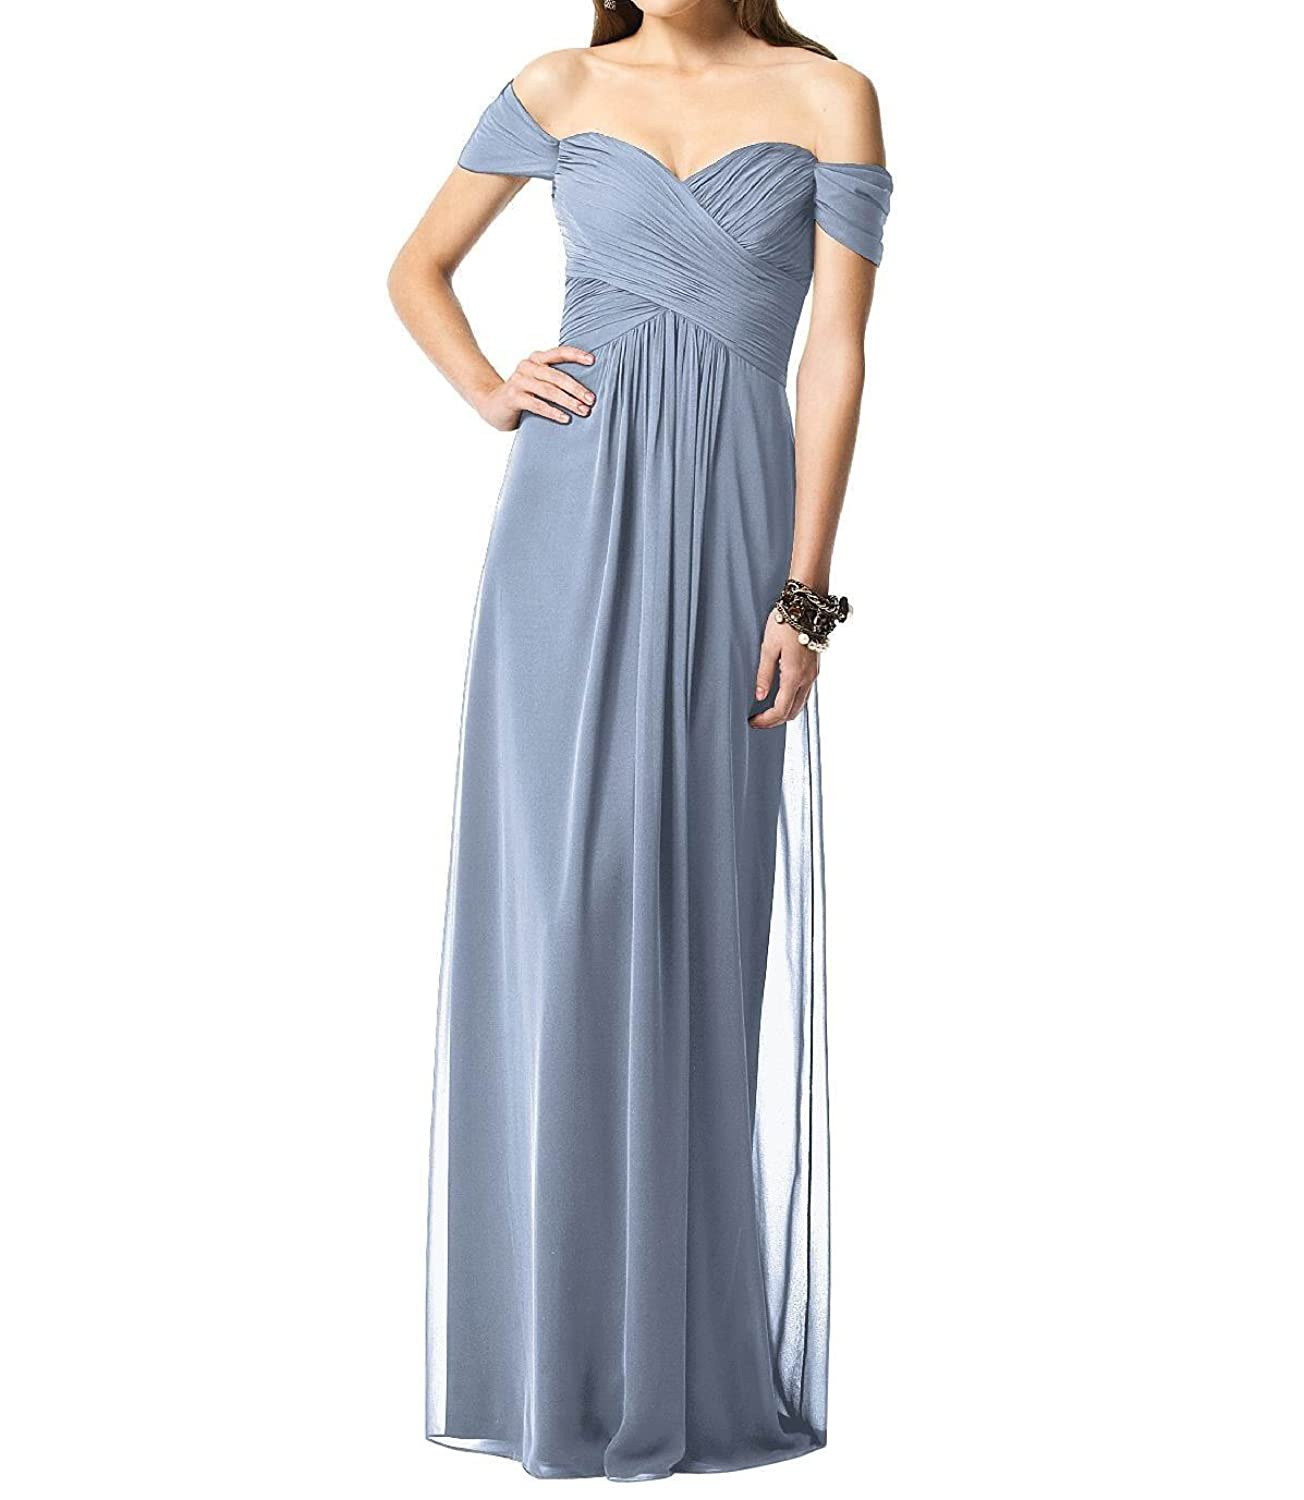 Leader of the Beauty Women Cap Sleeve Long Chiffon Bridesmaid Party Gown Powderblue UK 6